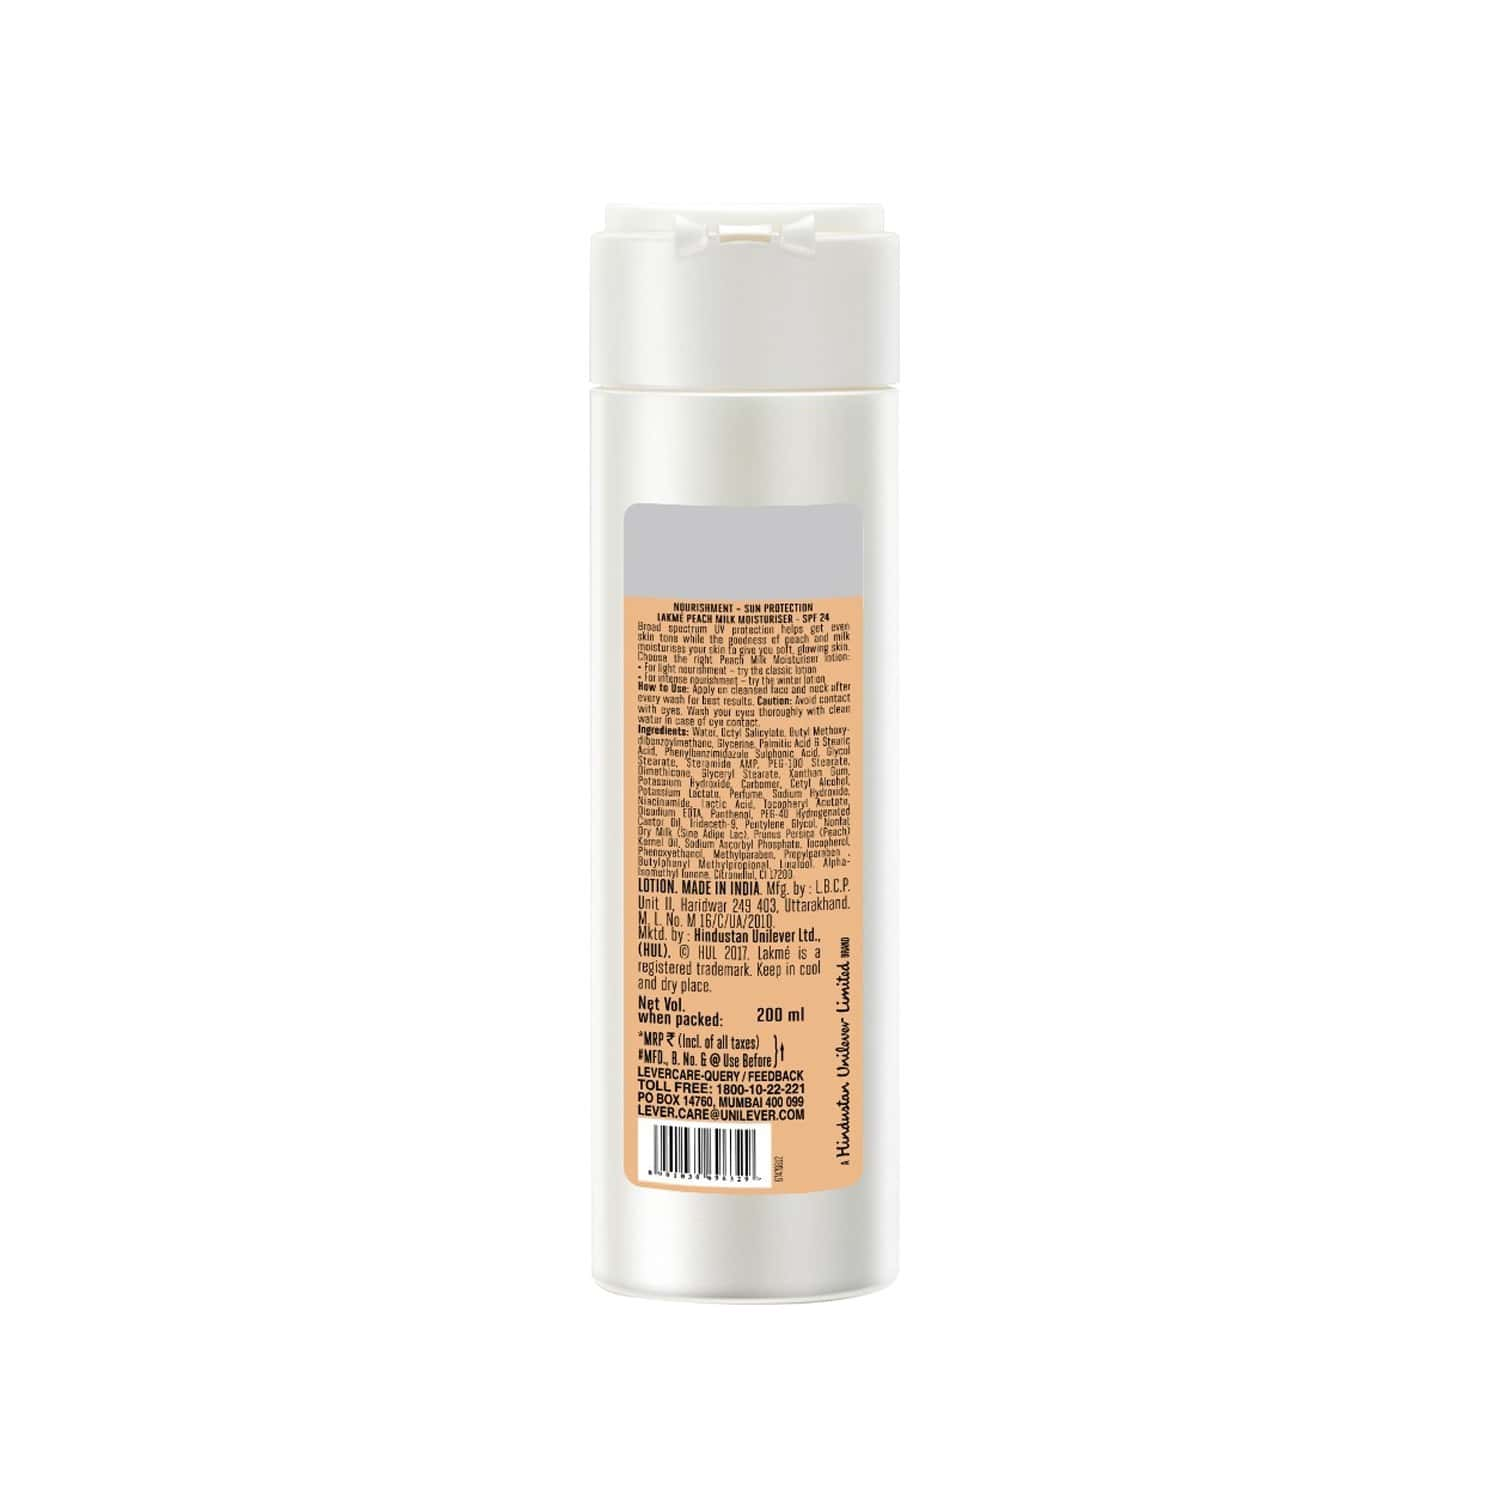 Lakme Peach Milk Moisturizer Spf 24 Pa++, 200 Ml